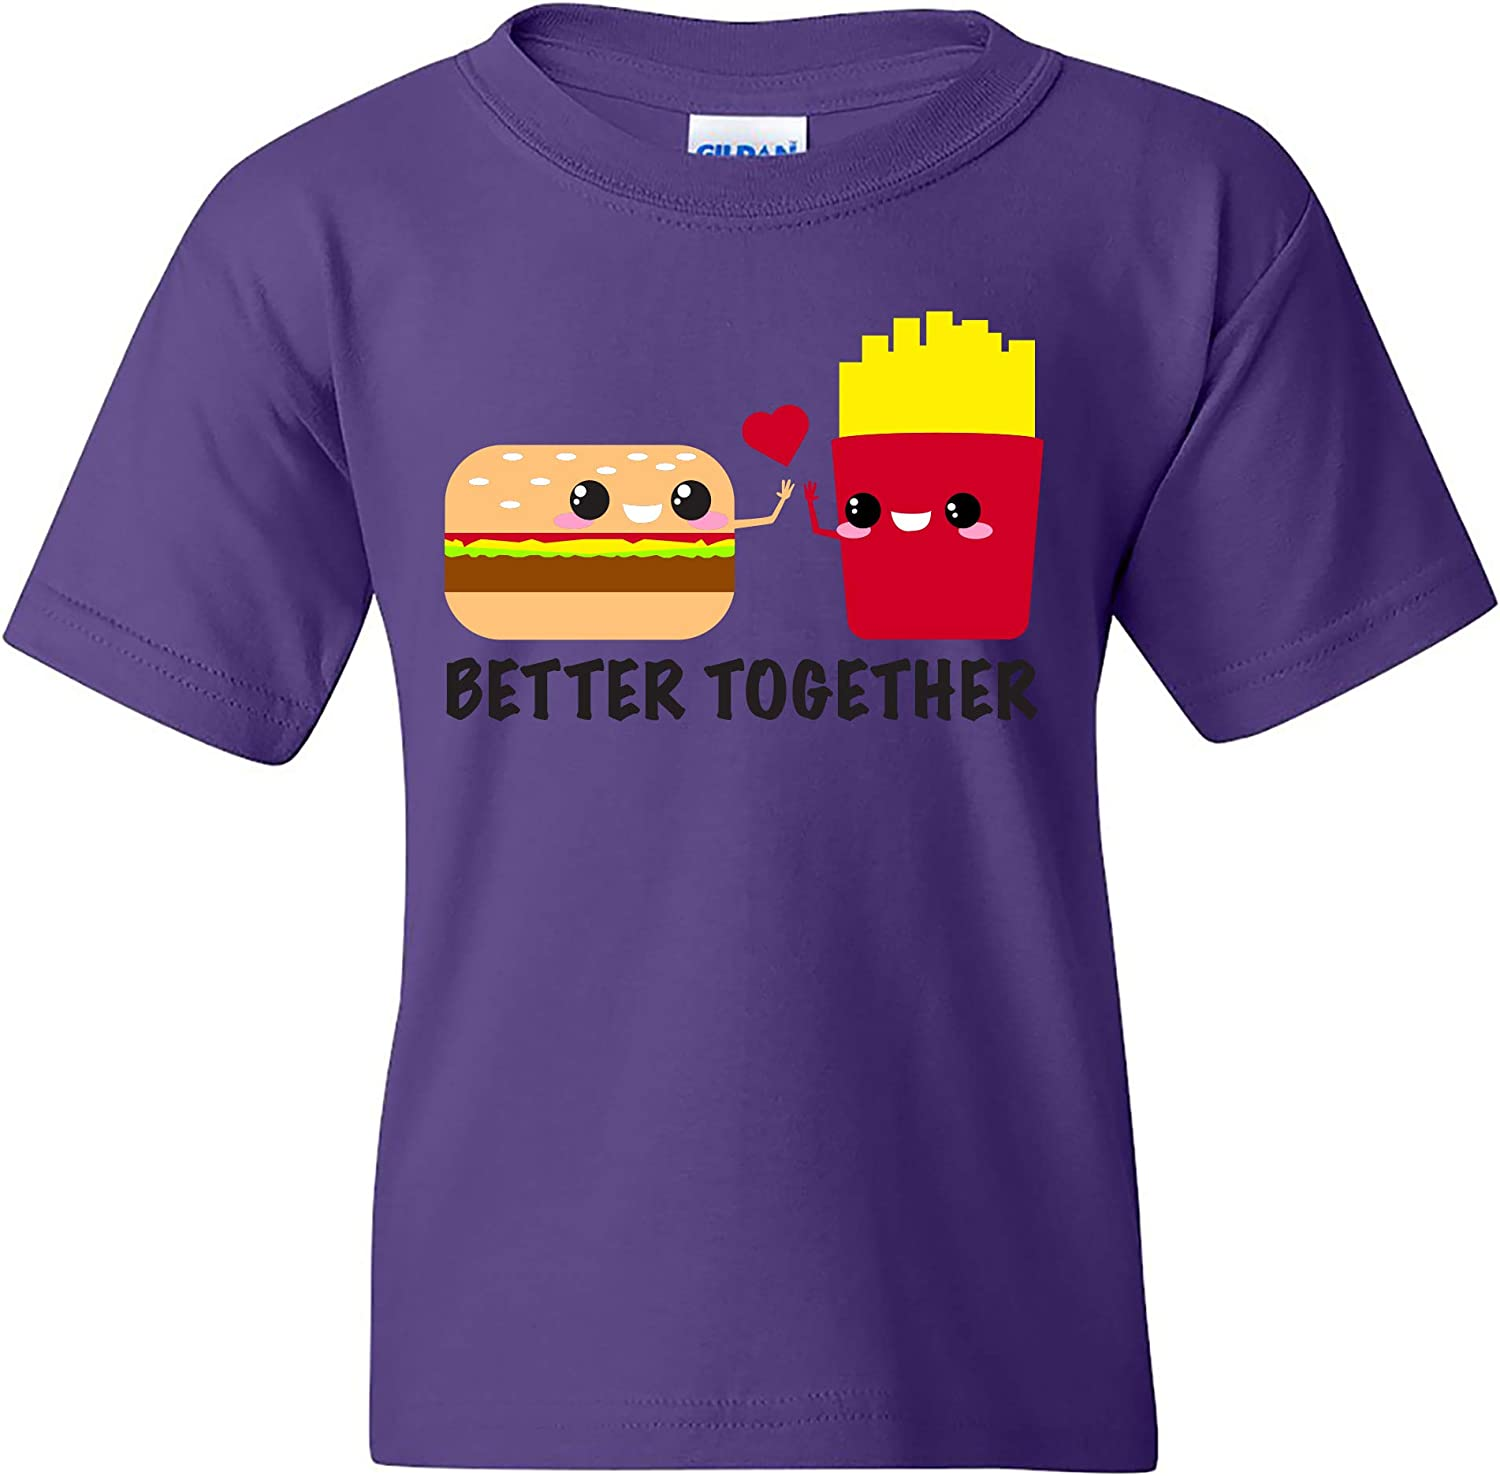 UGP Campus Apparel Better Together - Cheeseburger French Fries Fast Food Cute Cartoon Youth T Shirt